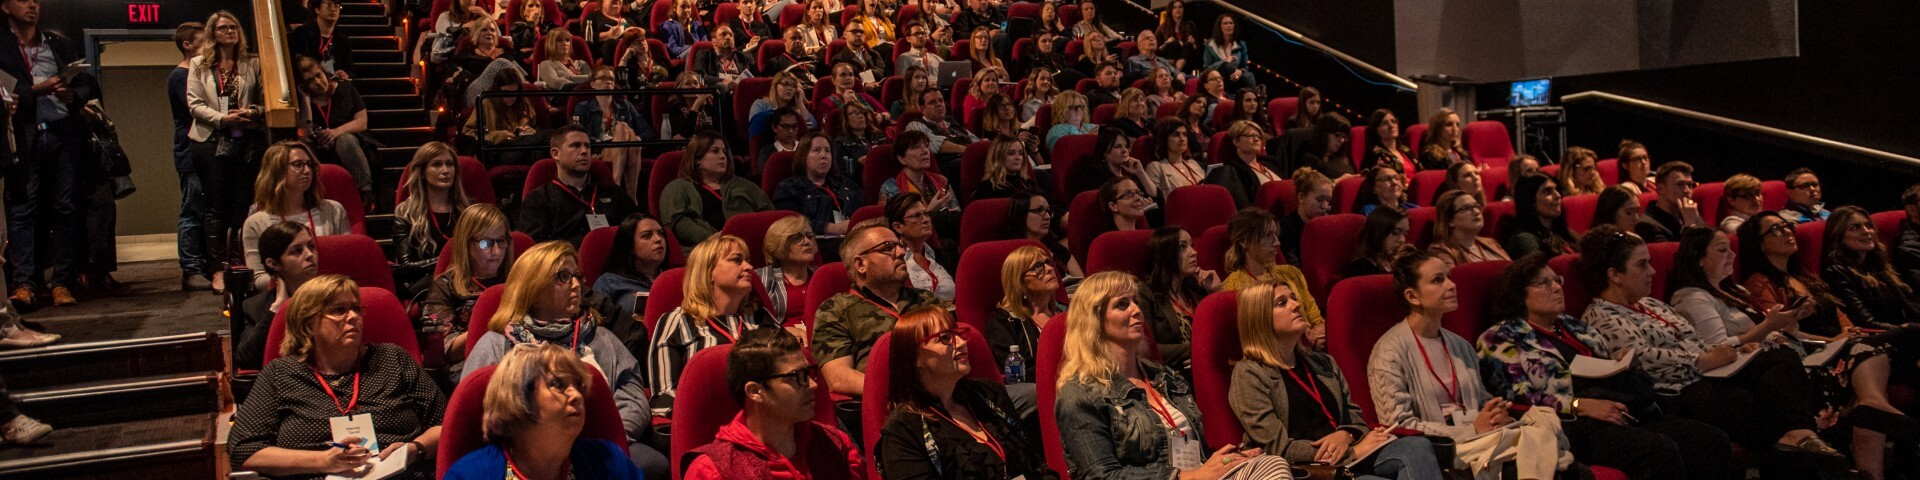 attendees in theatre